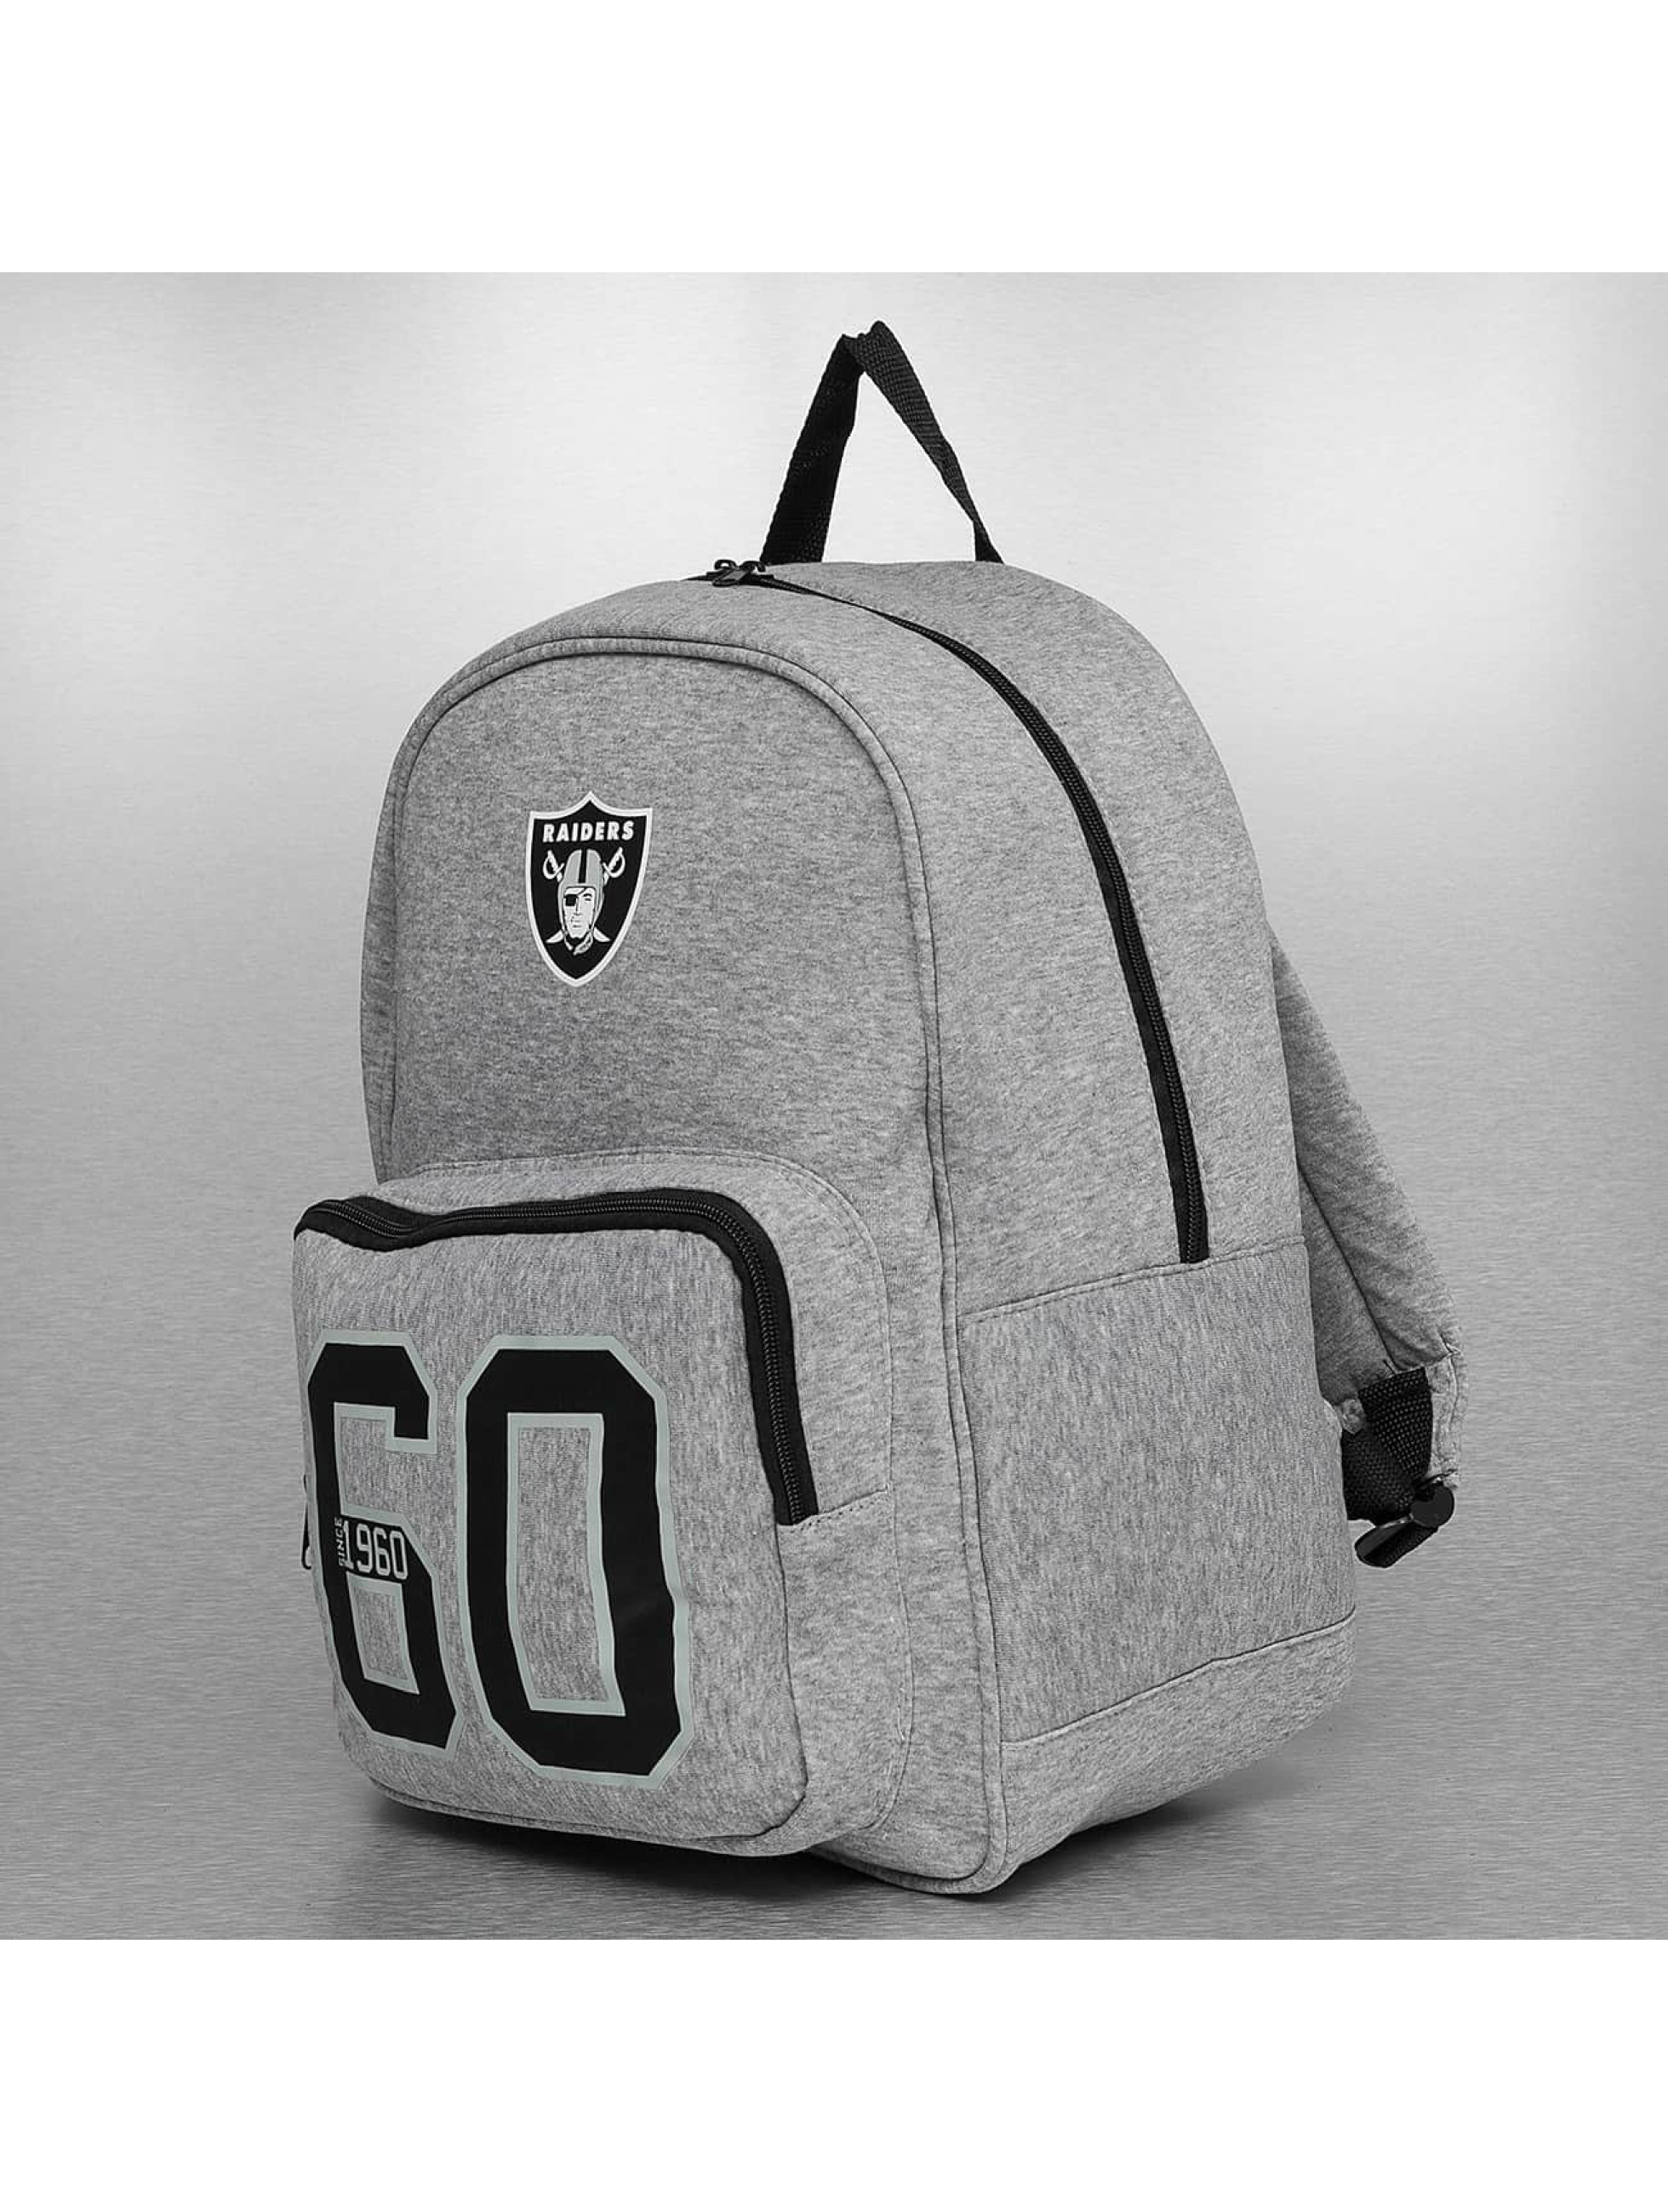 Forever Collectibles Рюкзак NFL Oakland Raiders серый